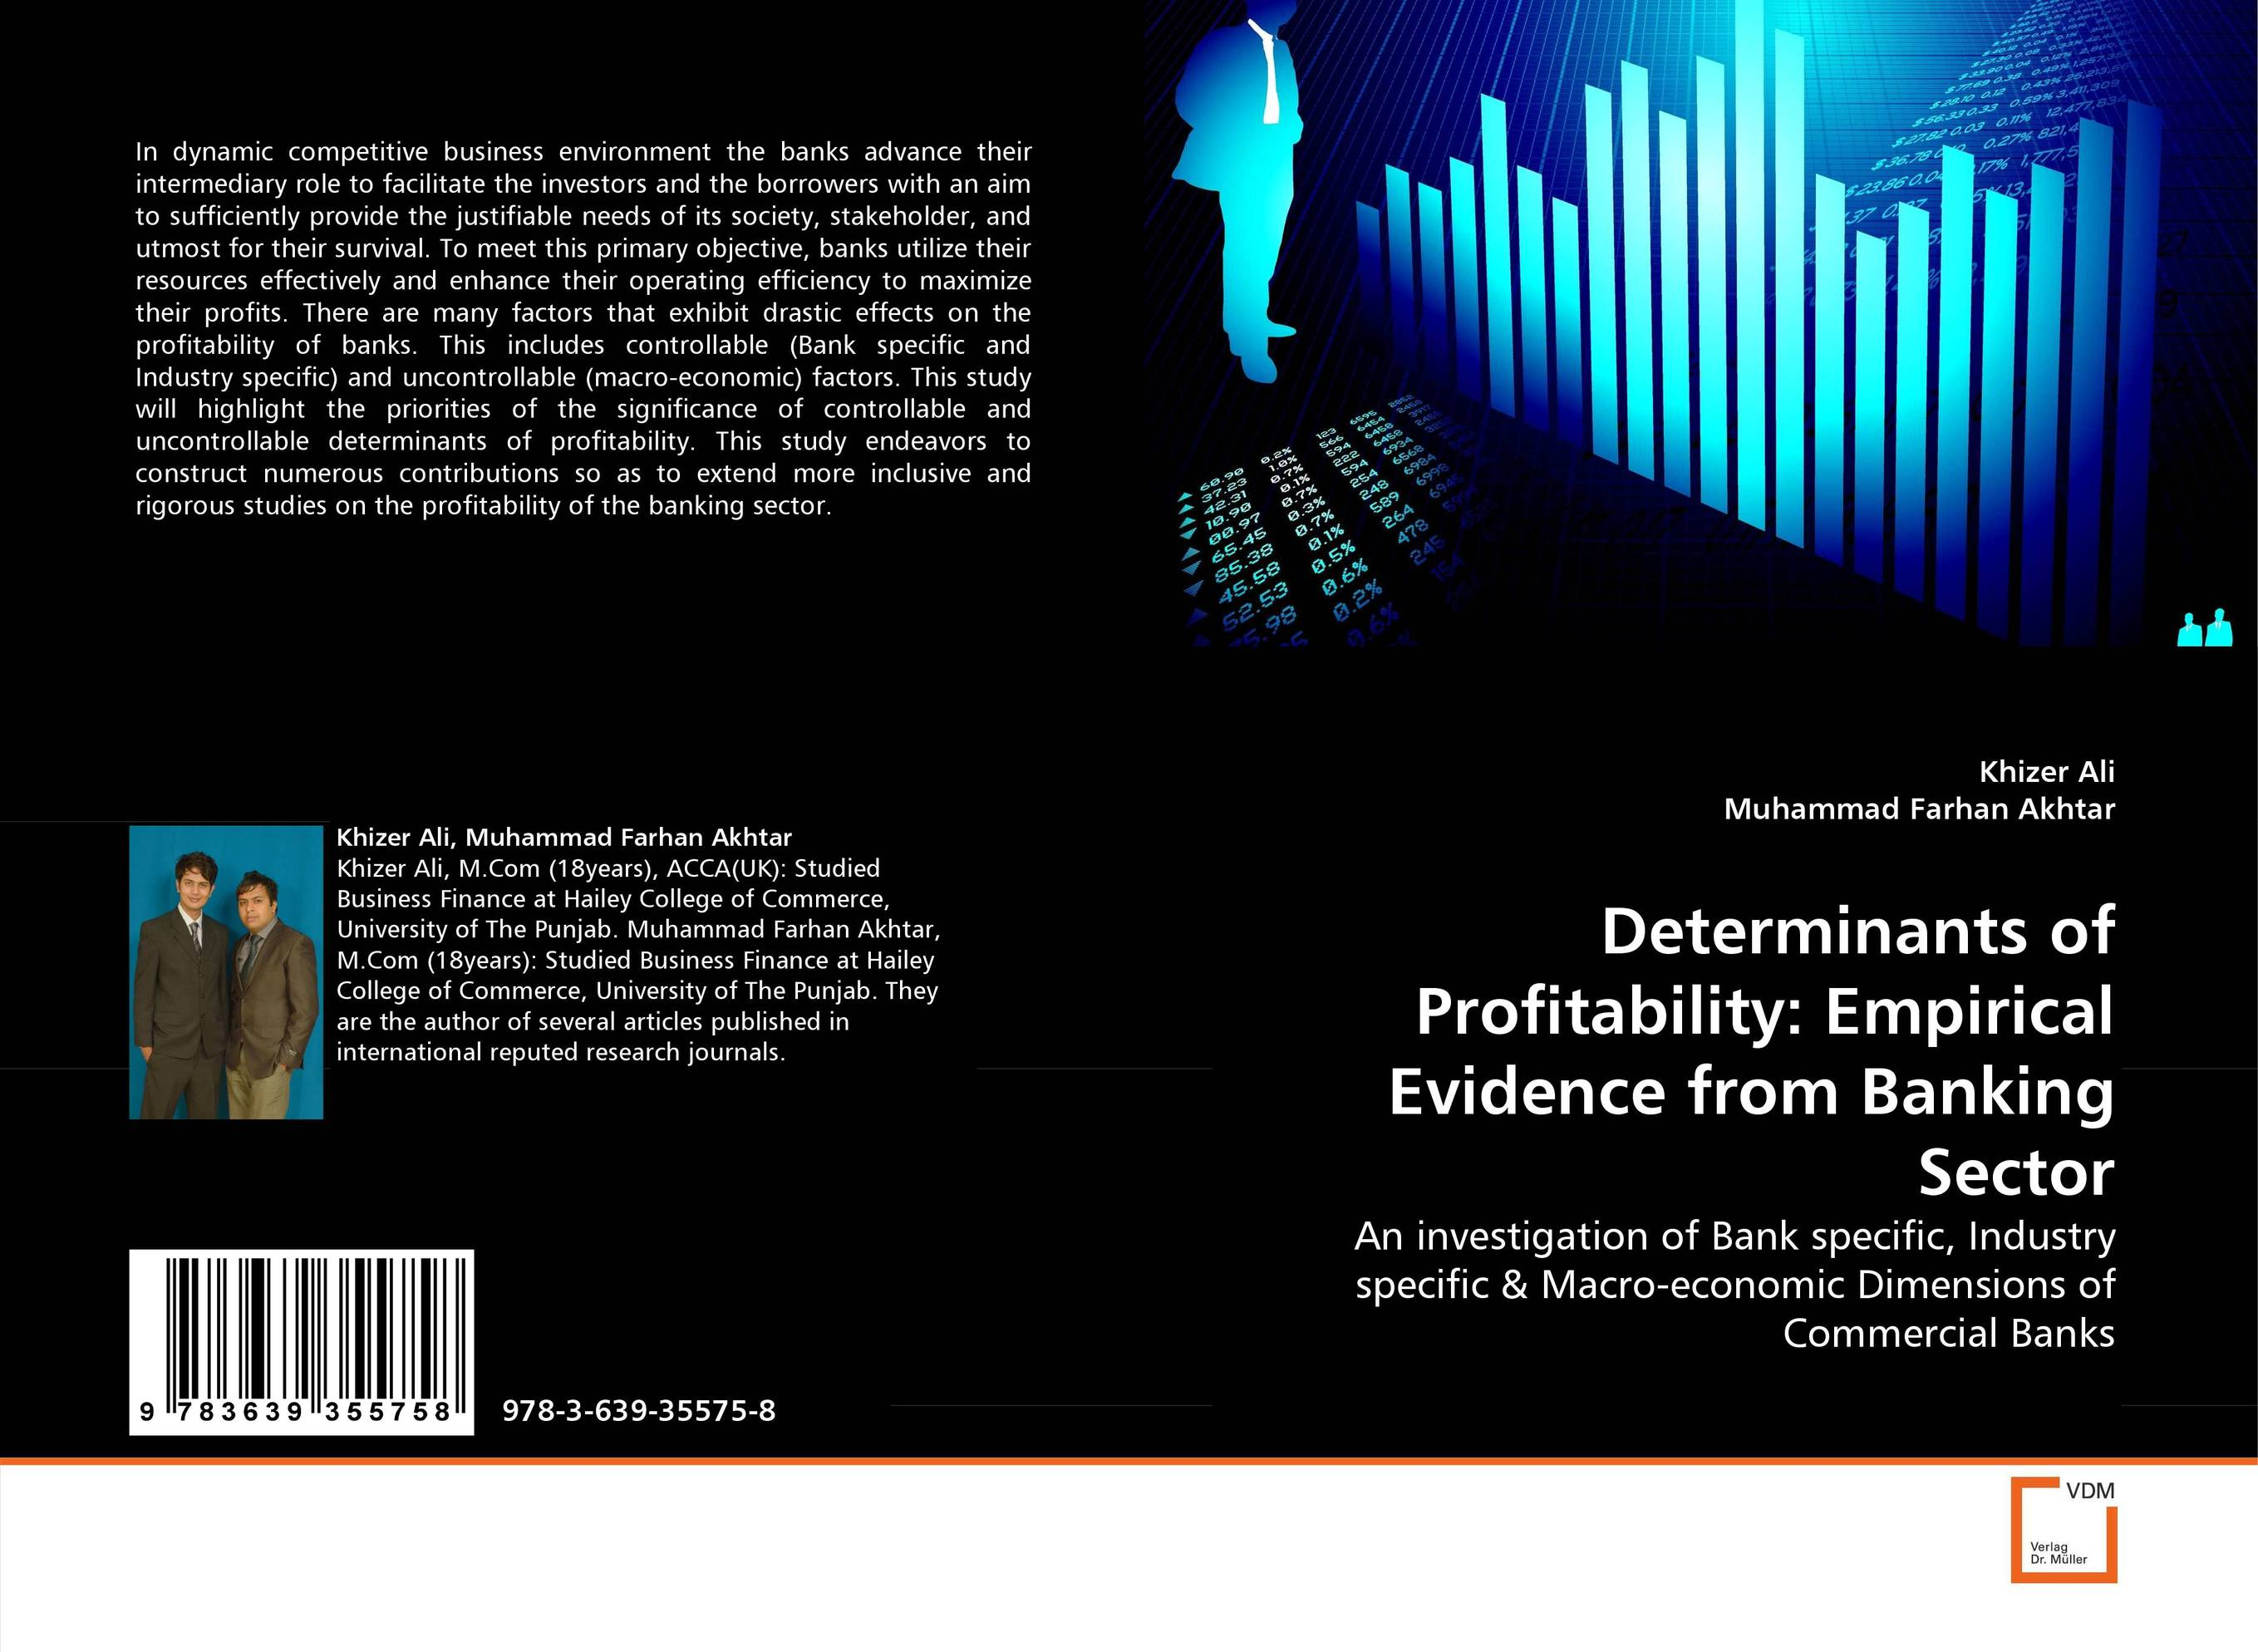 Determinants of Profitability: Empirical Evidence from Banking Sector